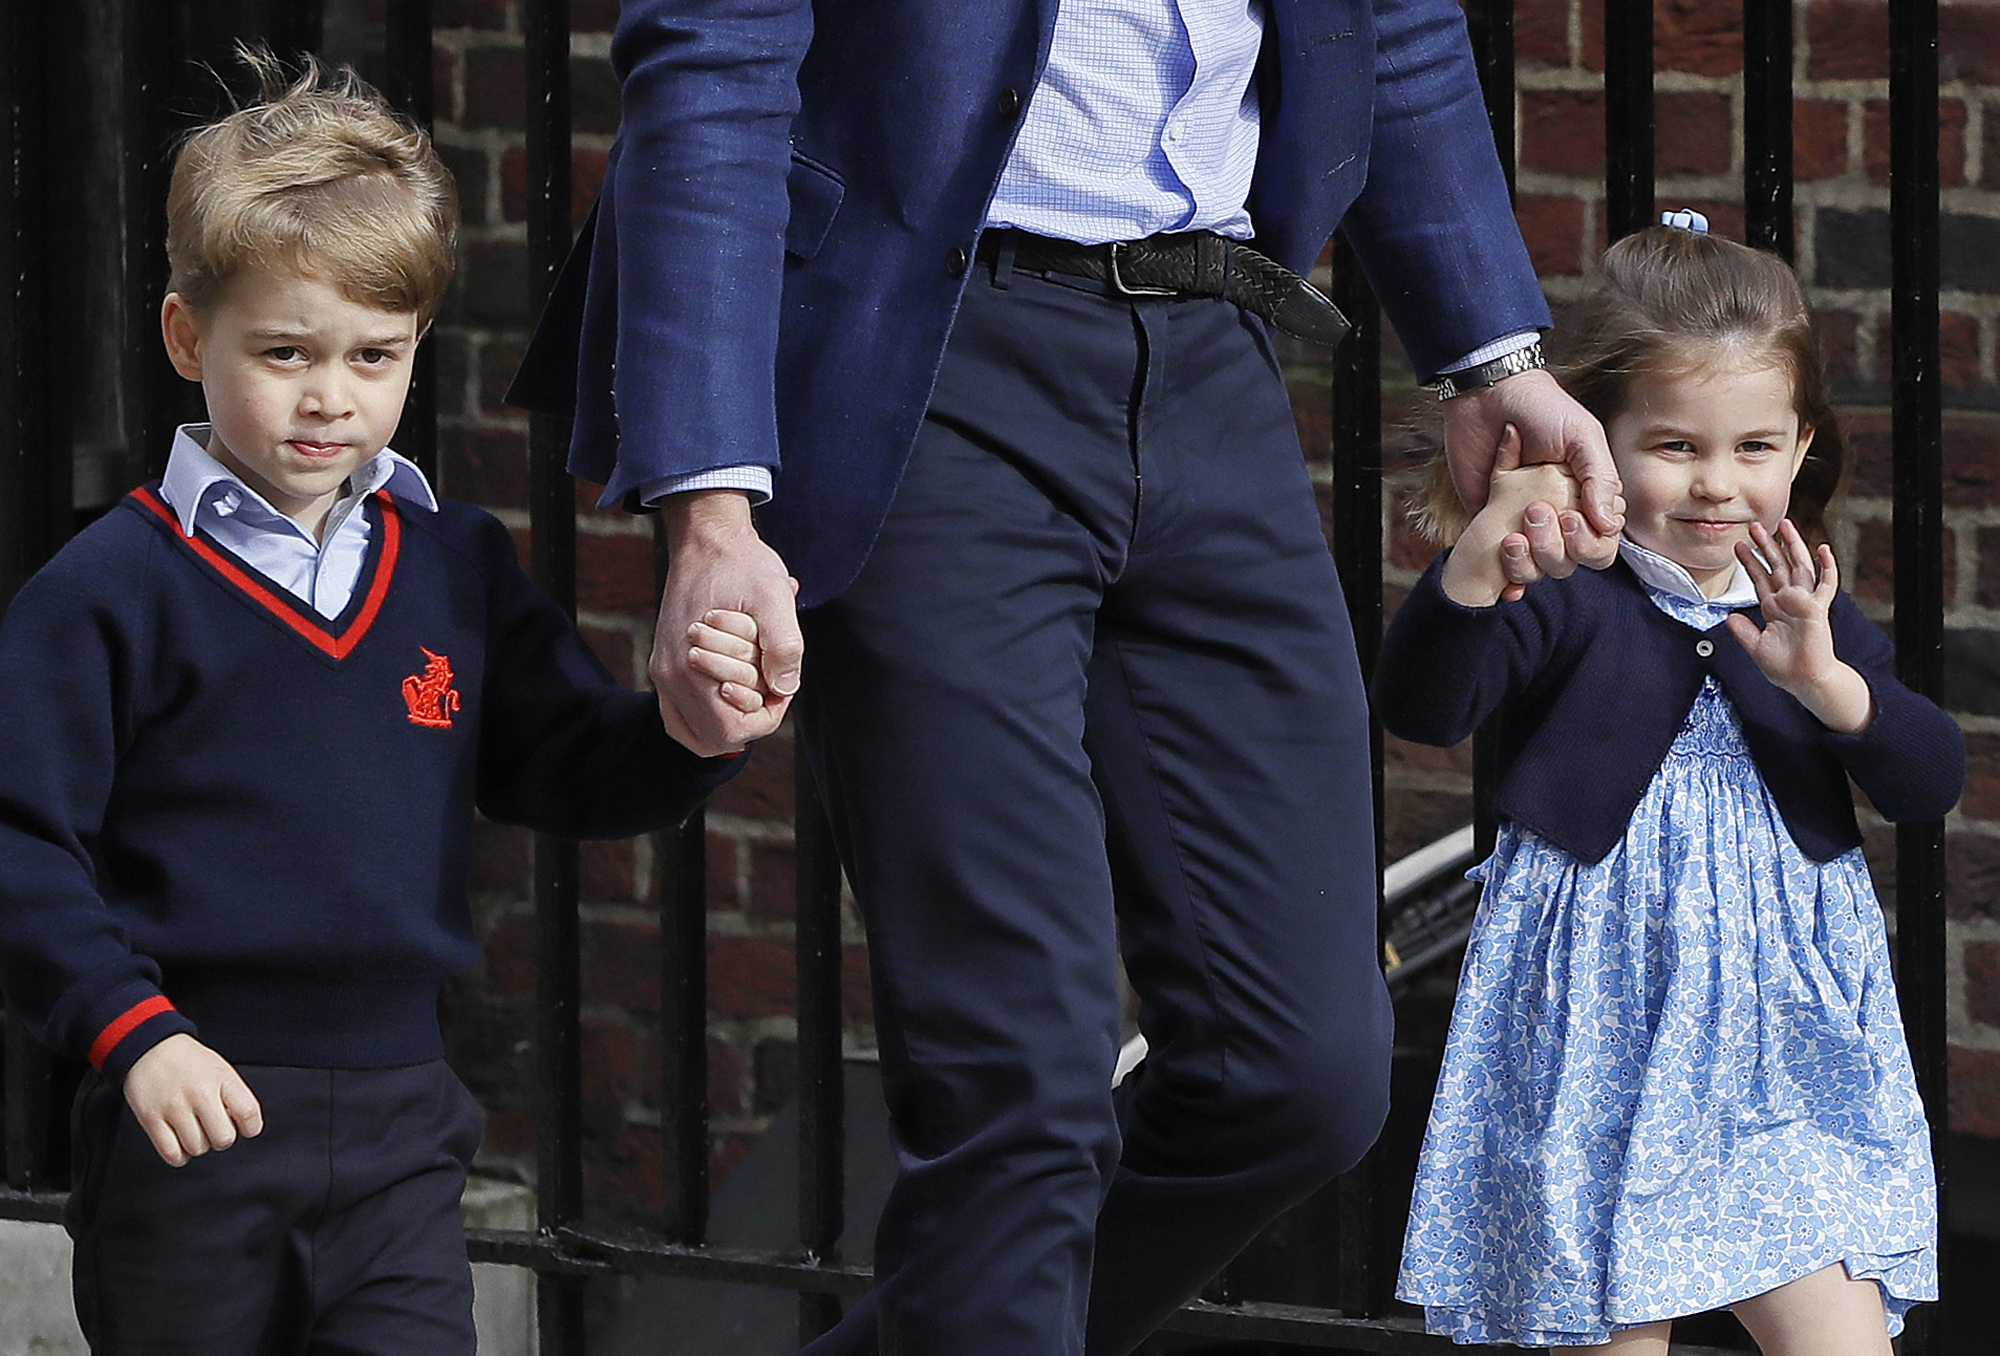 "<div class=""meta image-caption""><div class=""origin-logo origin-image none""><span>none</span></div><span class=""caption-text"">Britain's Prince William arrives with Prince George and Princess Charlotte back to the Lindo wing at St Mary's Hospital in London London, Monday, April 23, 2018. (Kirsty Wigglesworth/AP Photo)</span></div>"